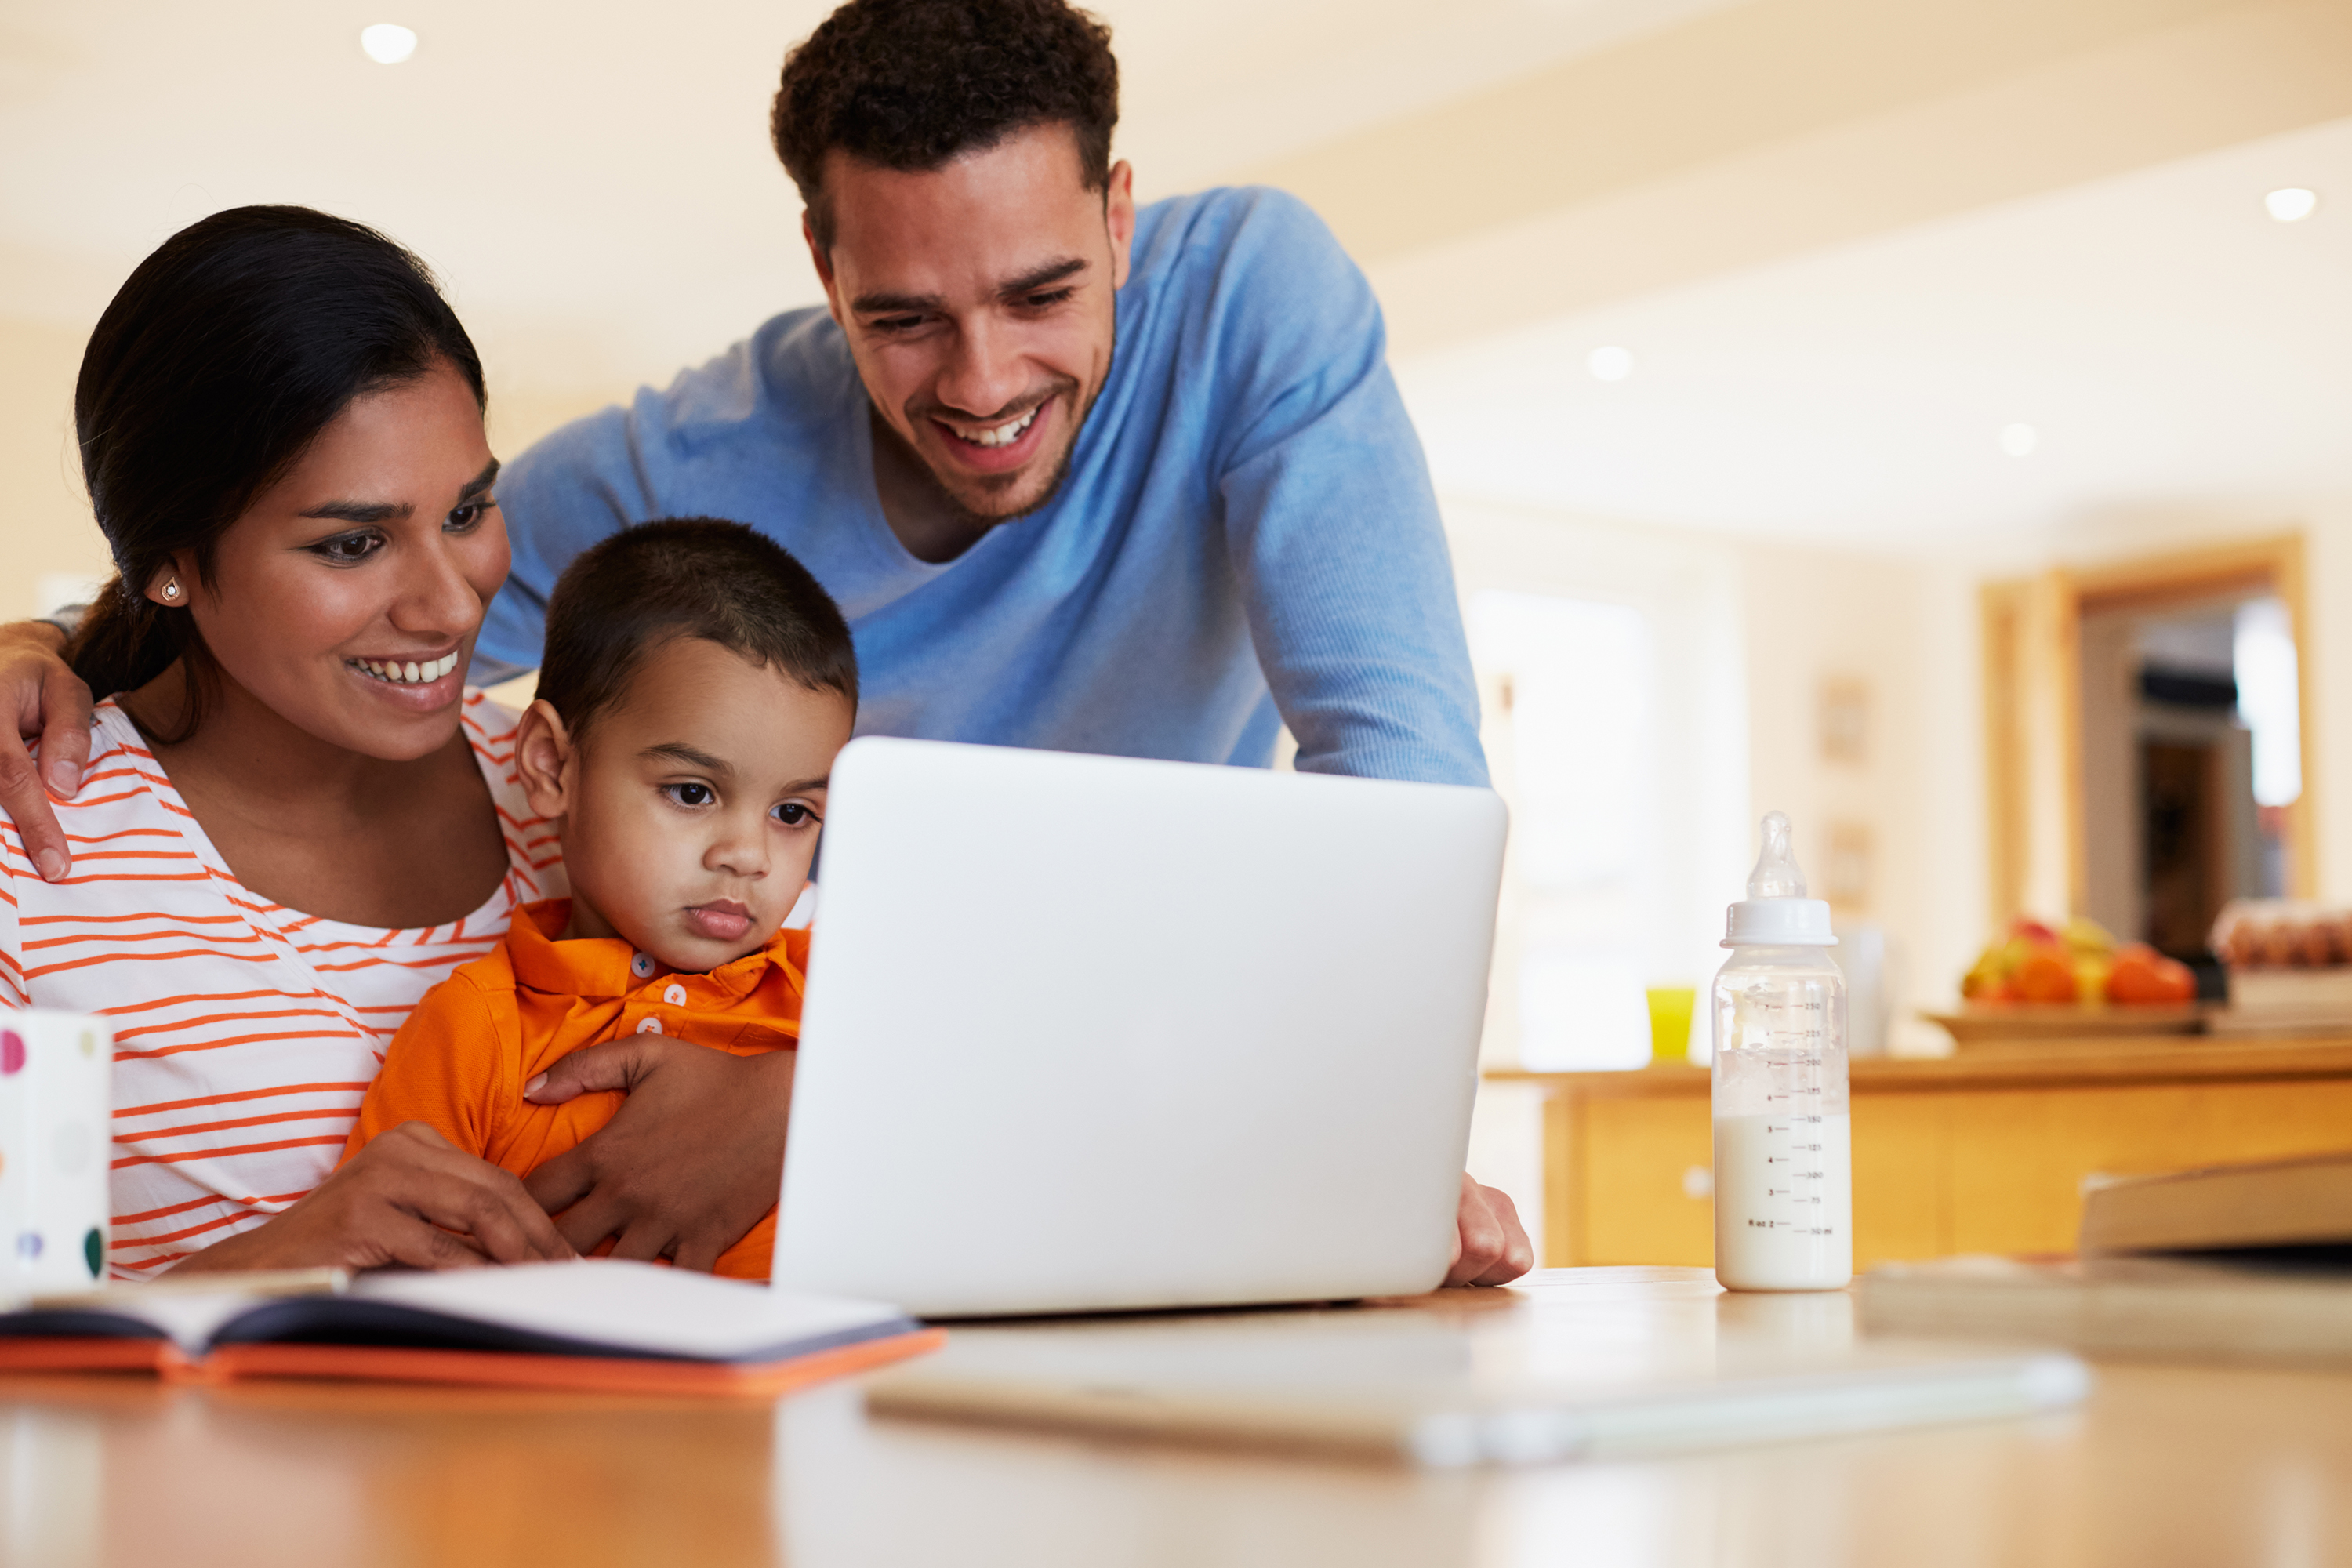 smiling family looking at a computer